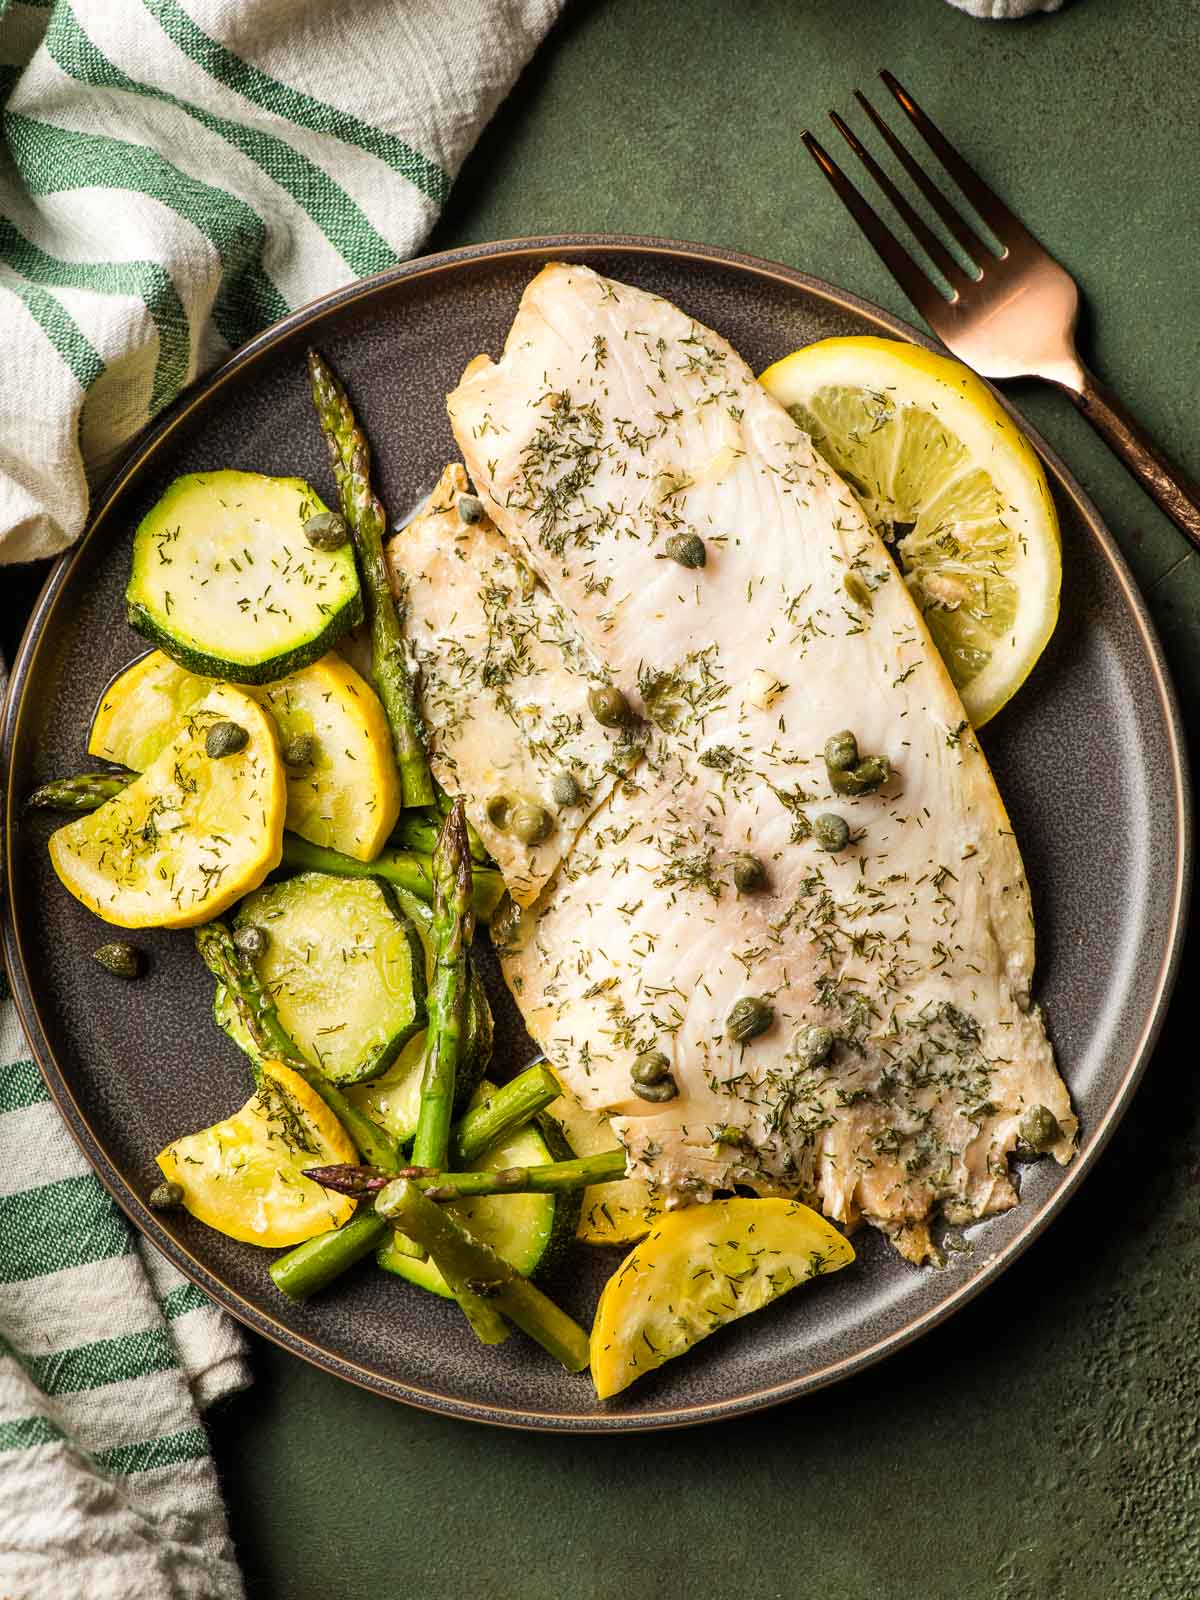 Dark gray plate with grilled tilapia fillet and summer veggies and lemon slice on the side.